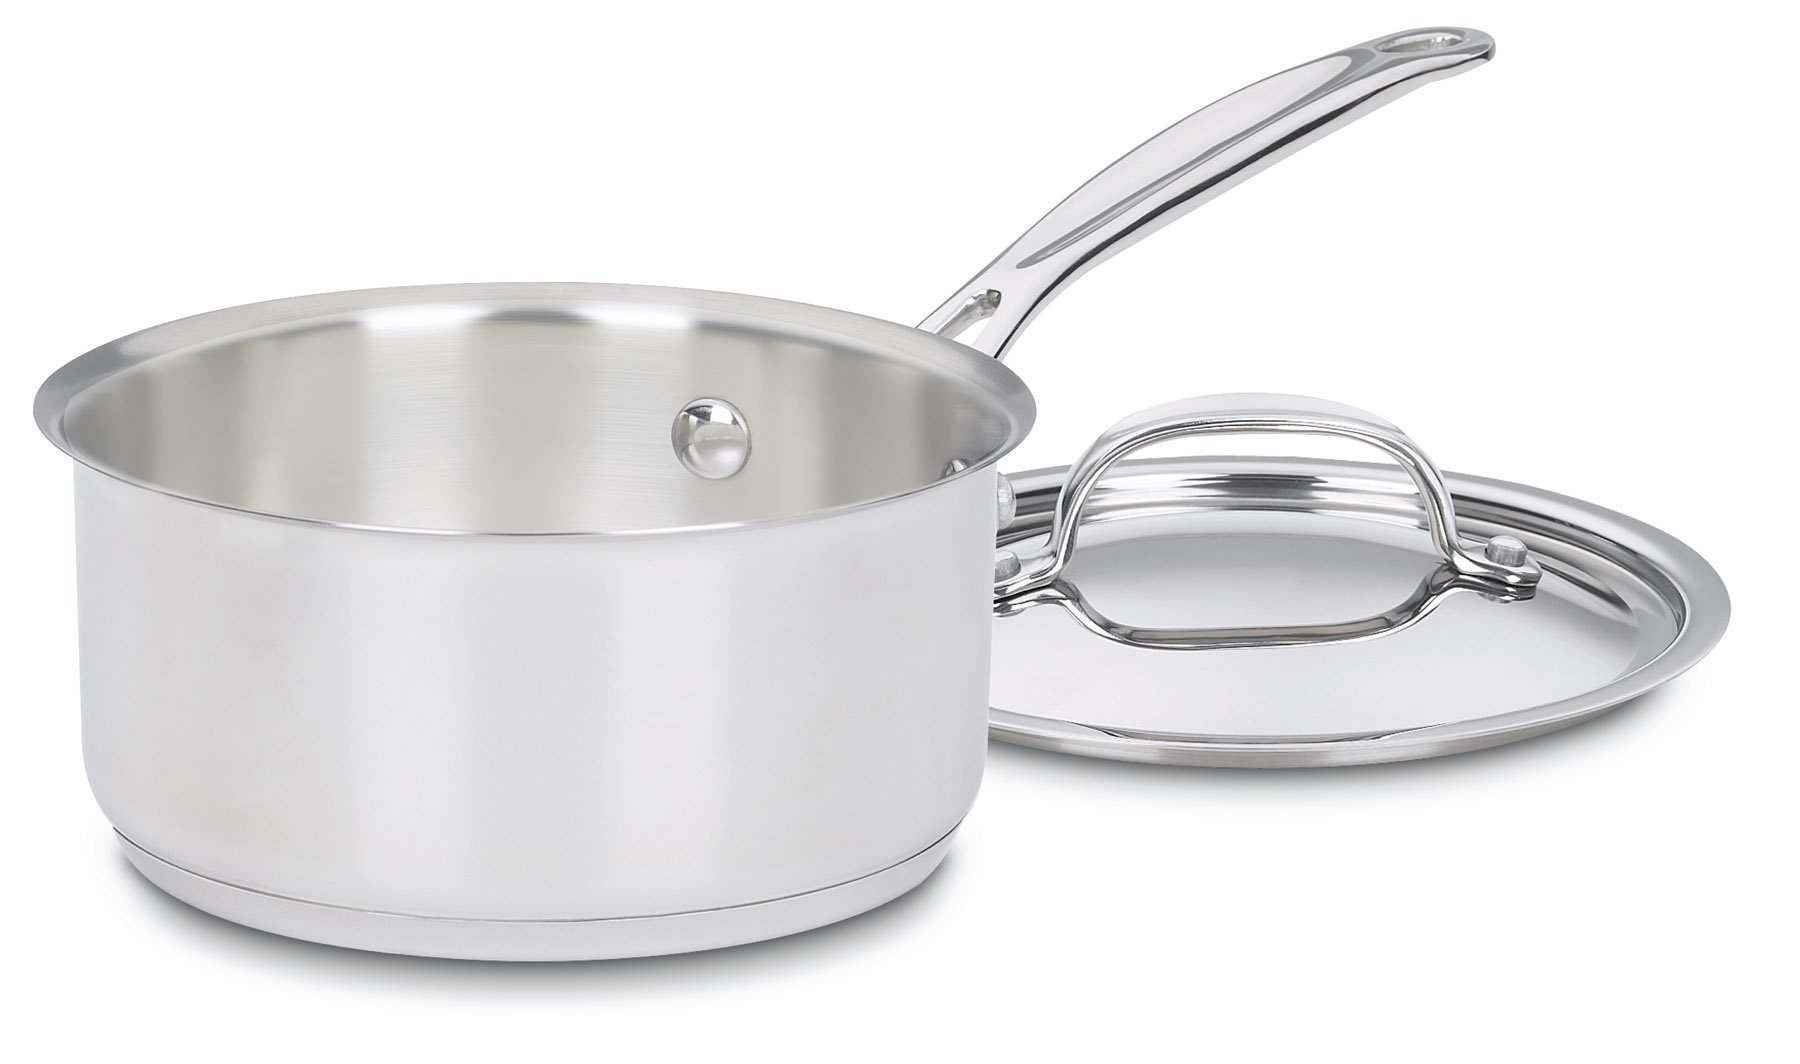 Cuisinart 719-14 Chef's Classic Stainless 1-Quart Saucepan with Cover by Cuisinart